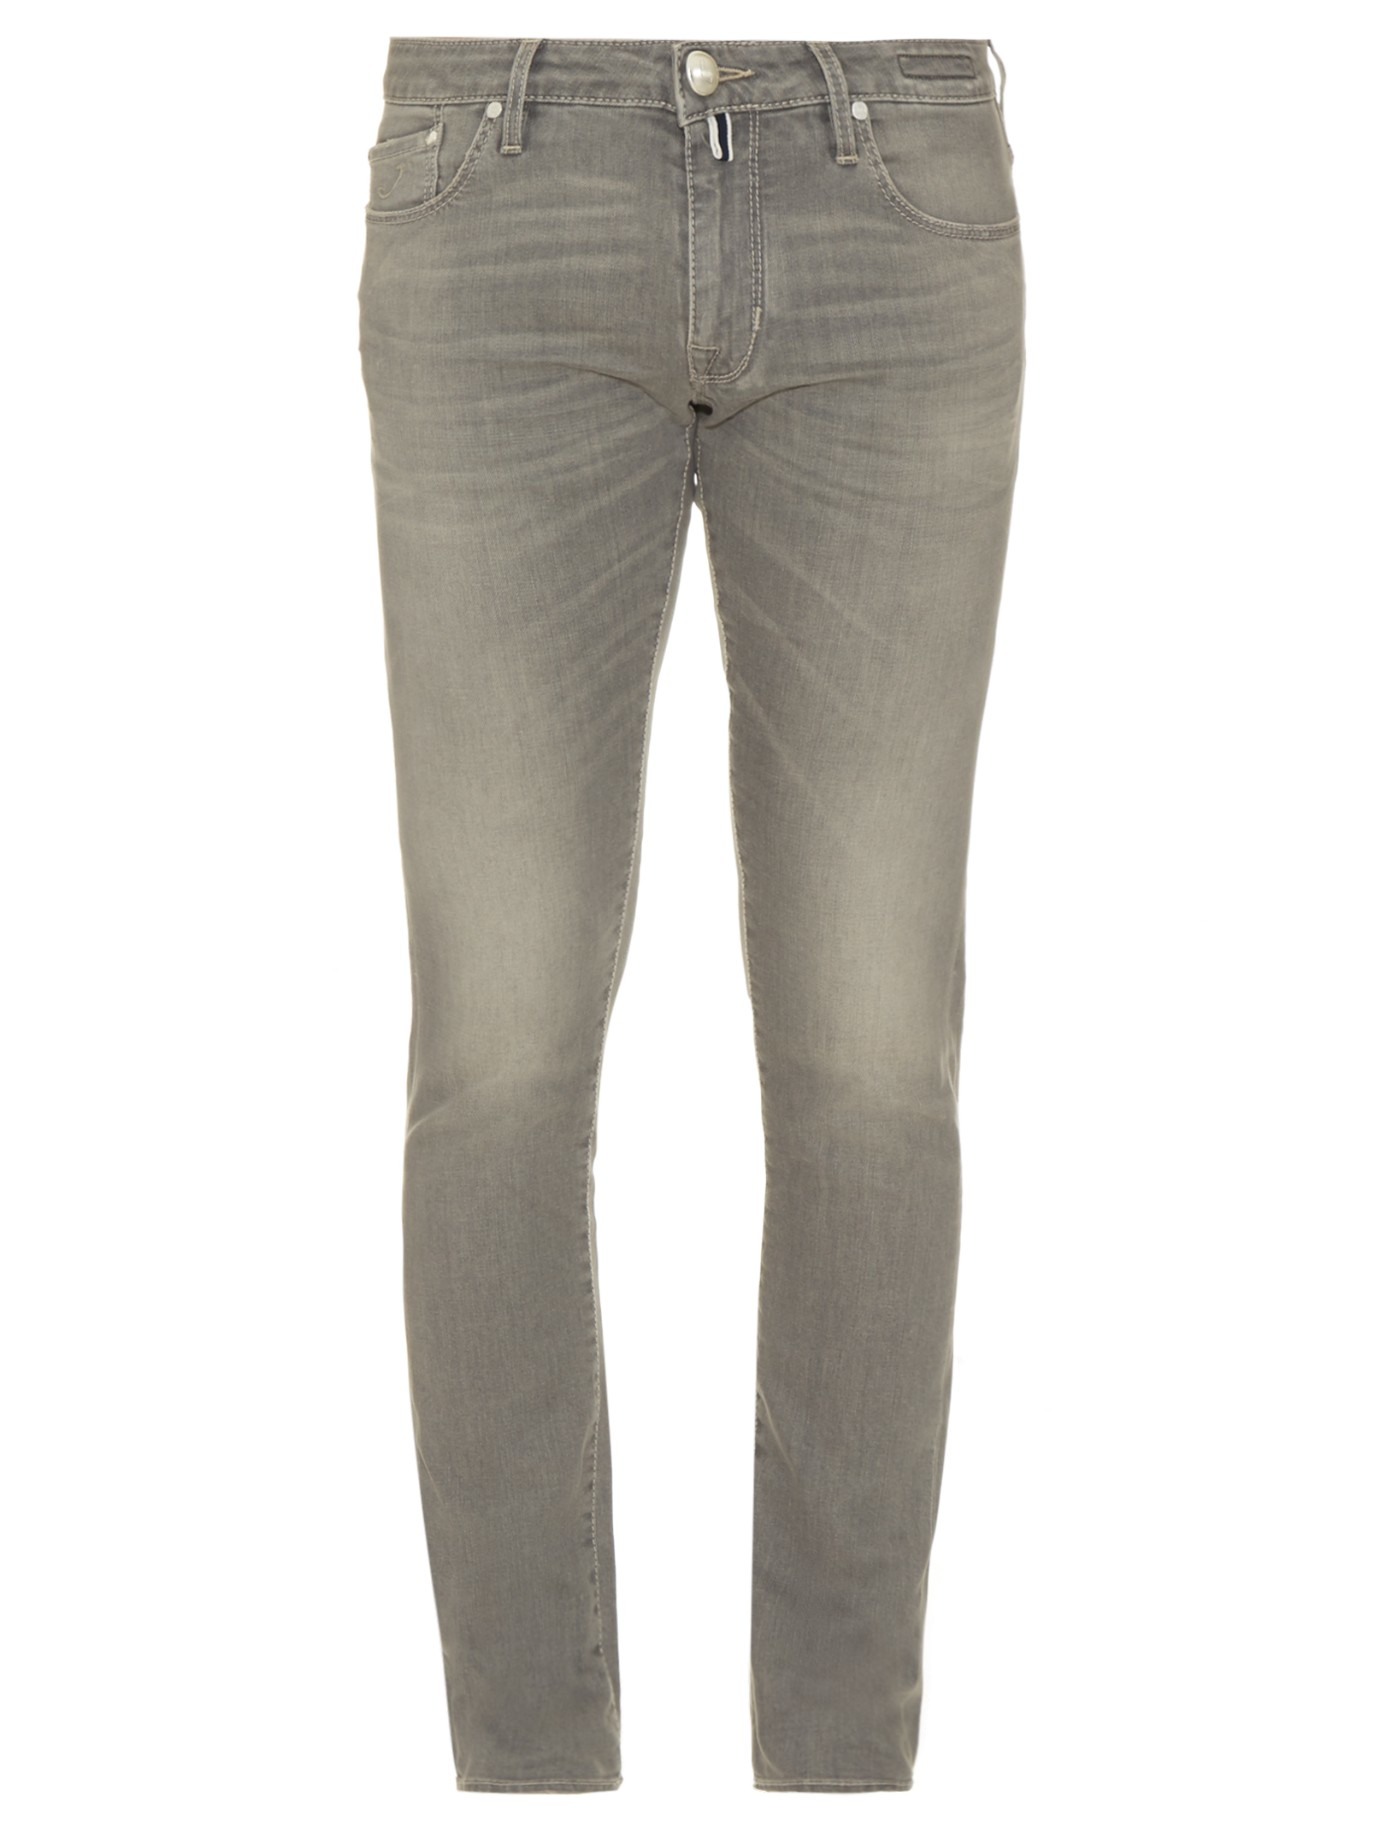 Lyst - Jacob Cohen Tailored Stretch-denim Jeans in Gray ...